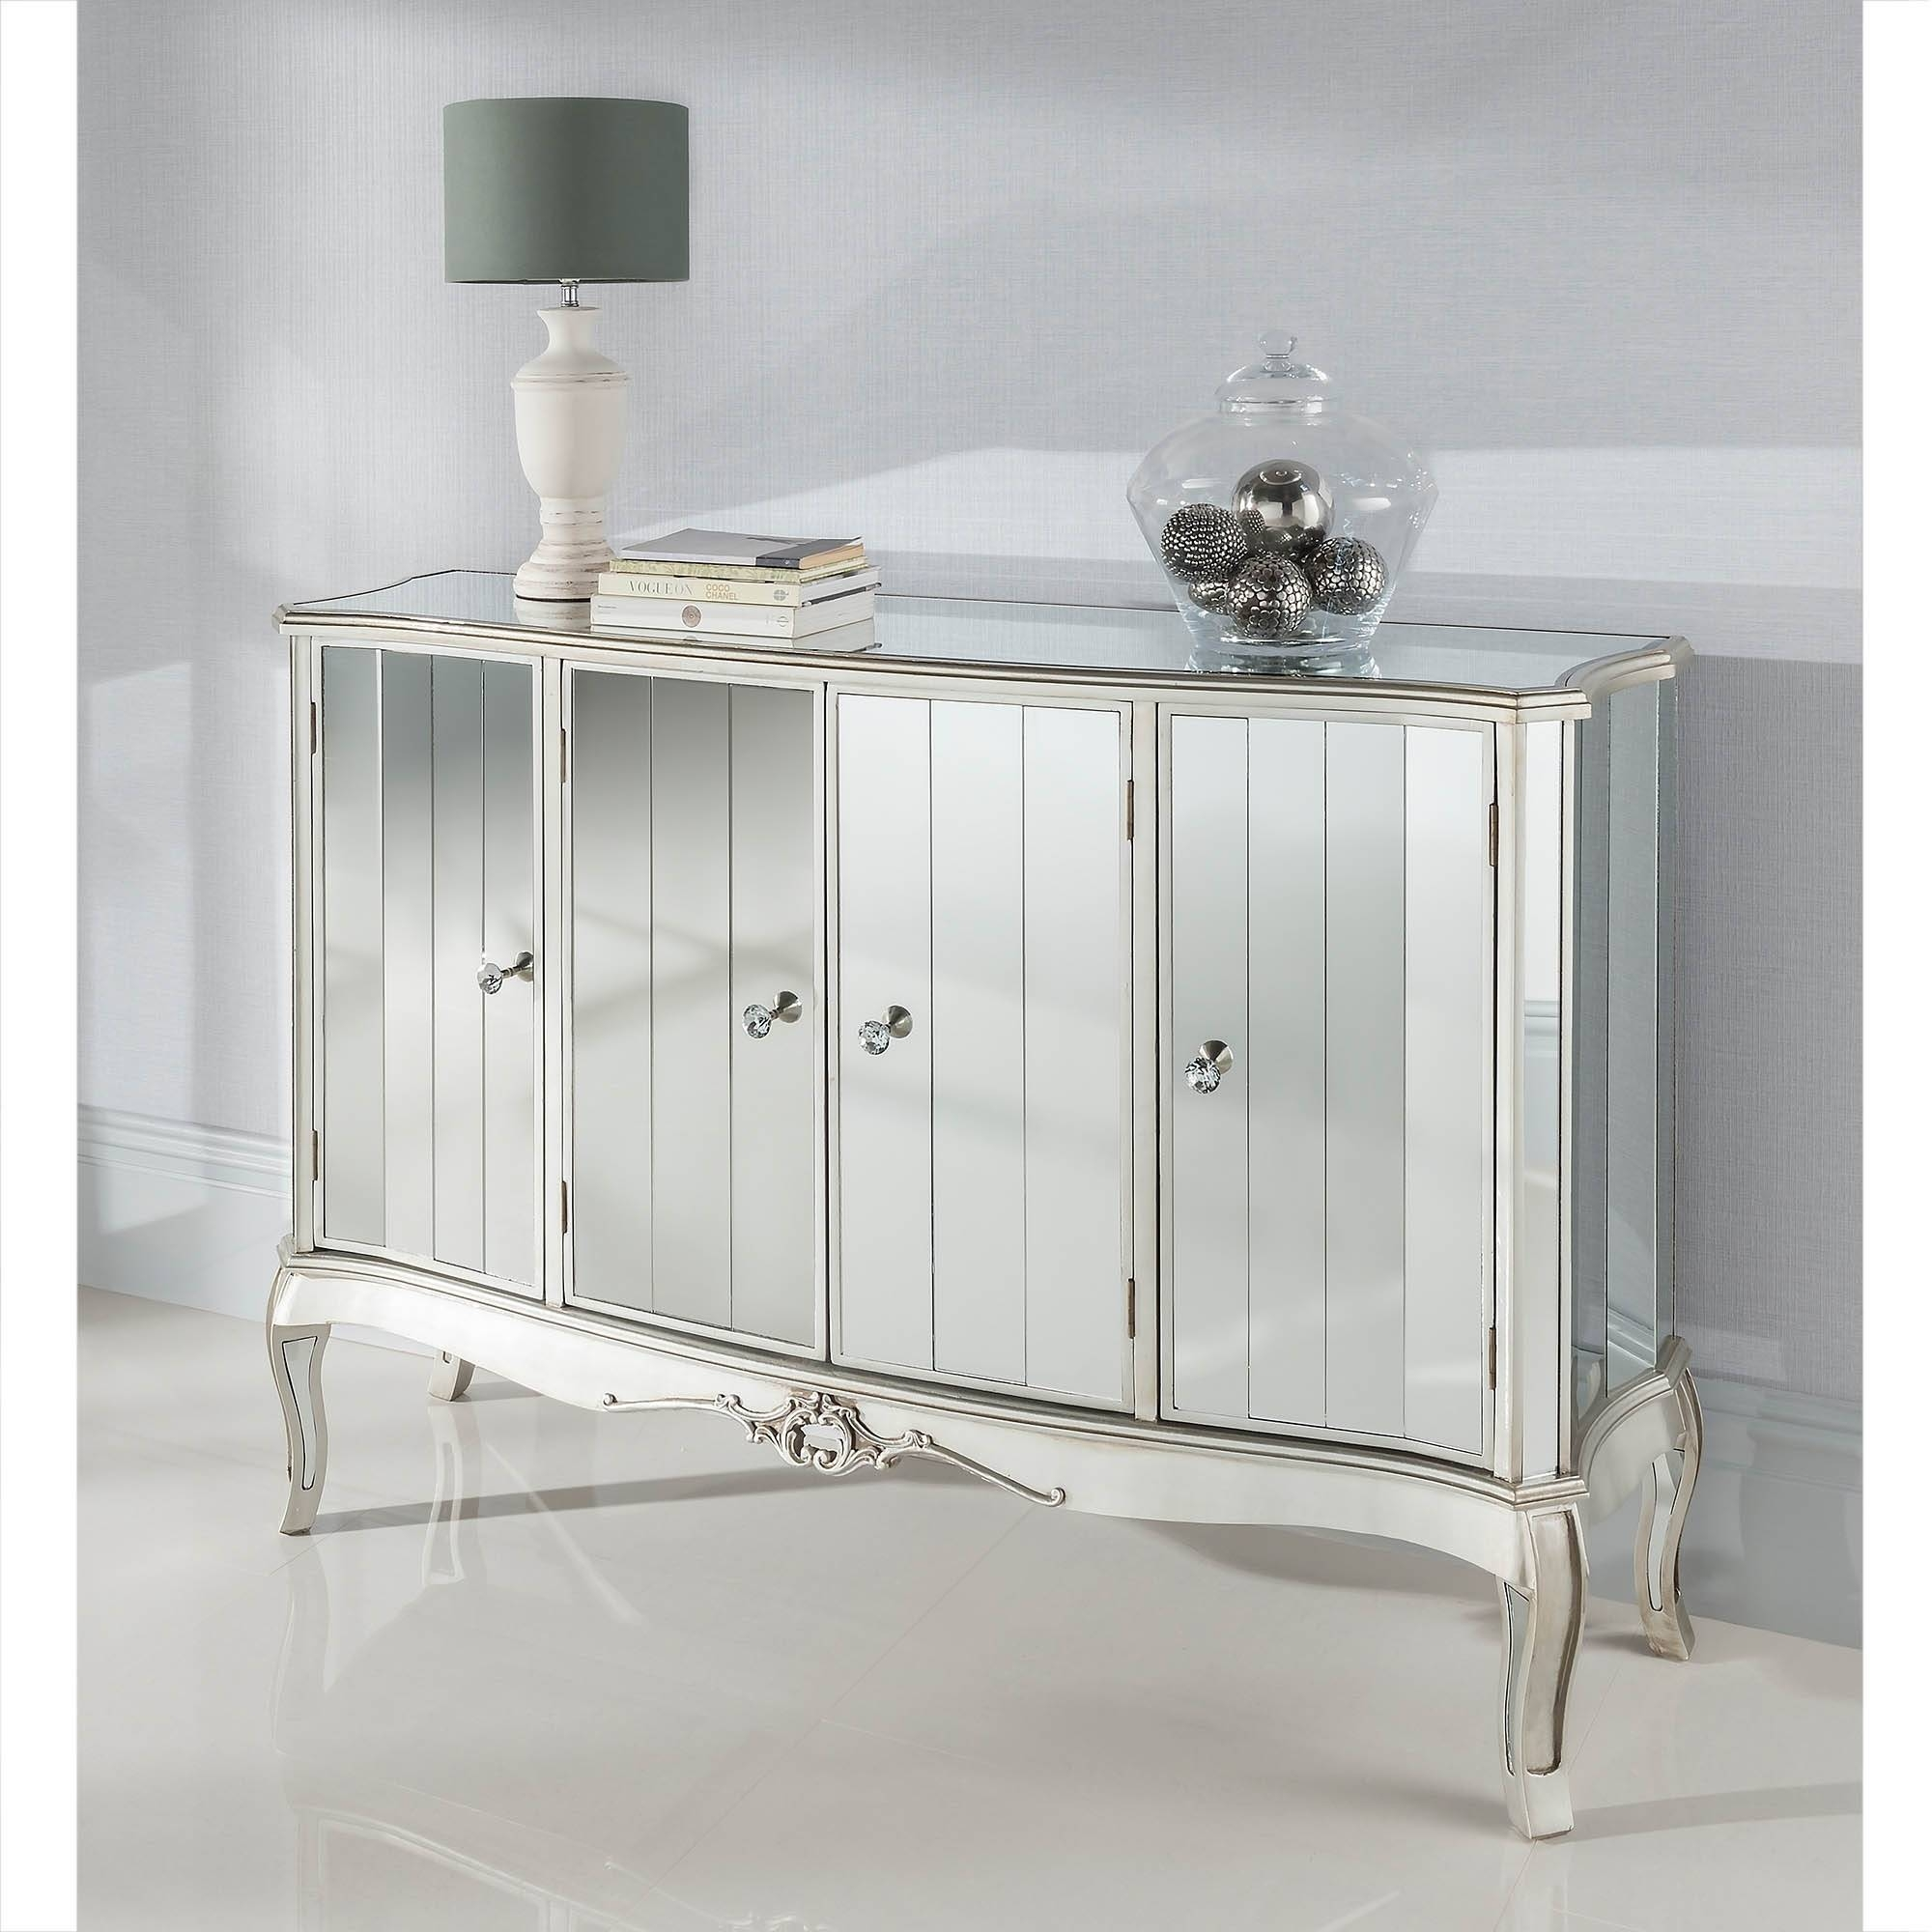 Perugia Mirrored Cabinet | Glass Furniture Online In Mirrored Sideboards (#13 of 20)